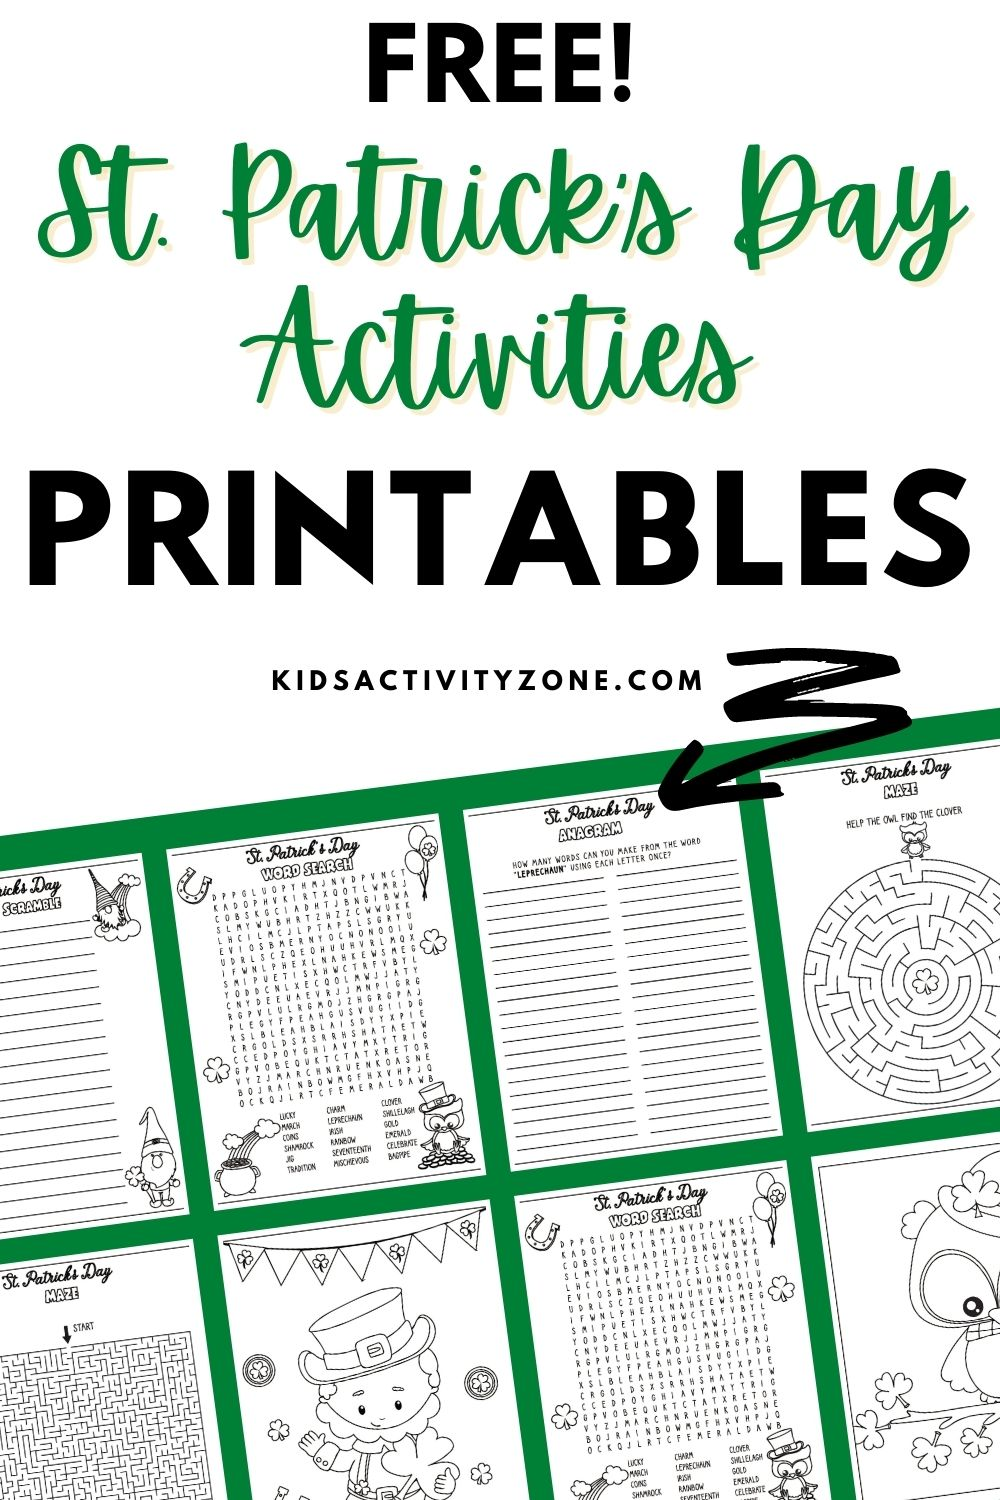 Free printable activities for St. Patrick's Day! This set of activities has coloring pages, word searches, anagrams and more. Kids will have so much fun with these fun themed activities for St. Patrick's Day.